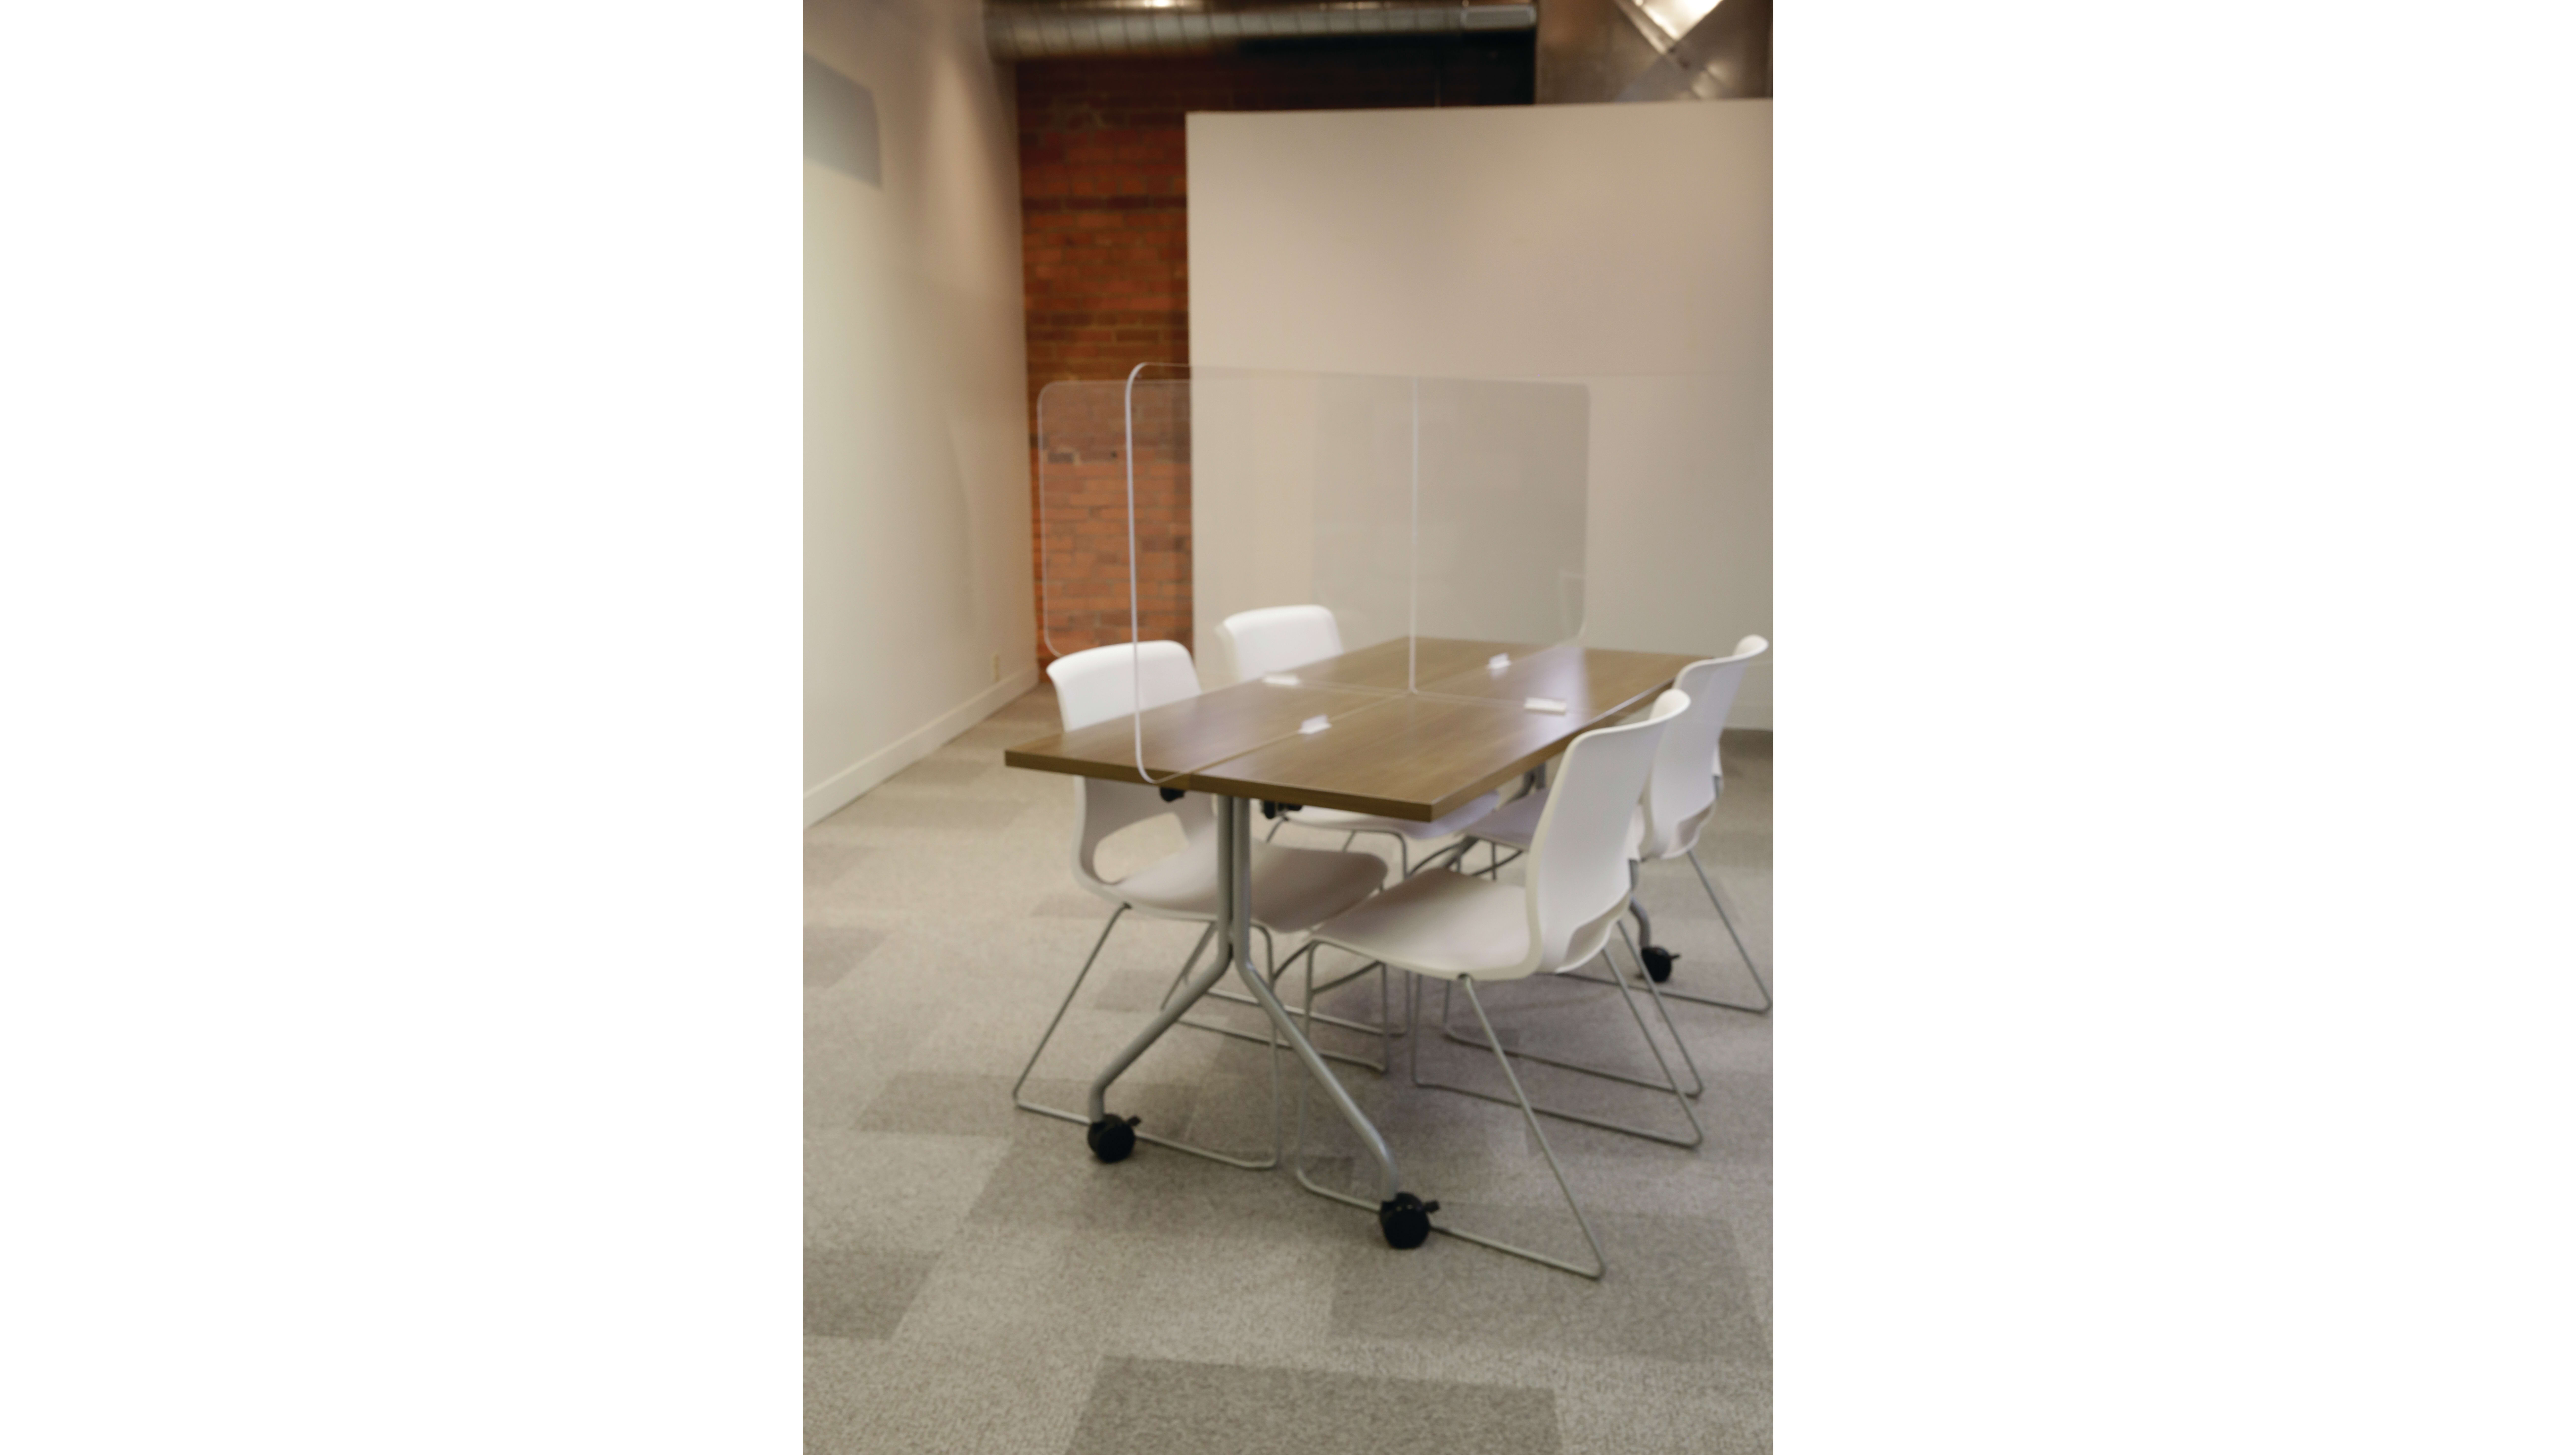 Motivate Chair with Between tables and UAcrylic Quad Screen